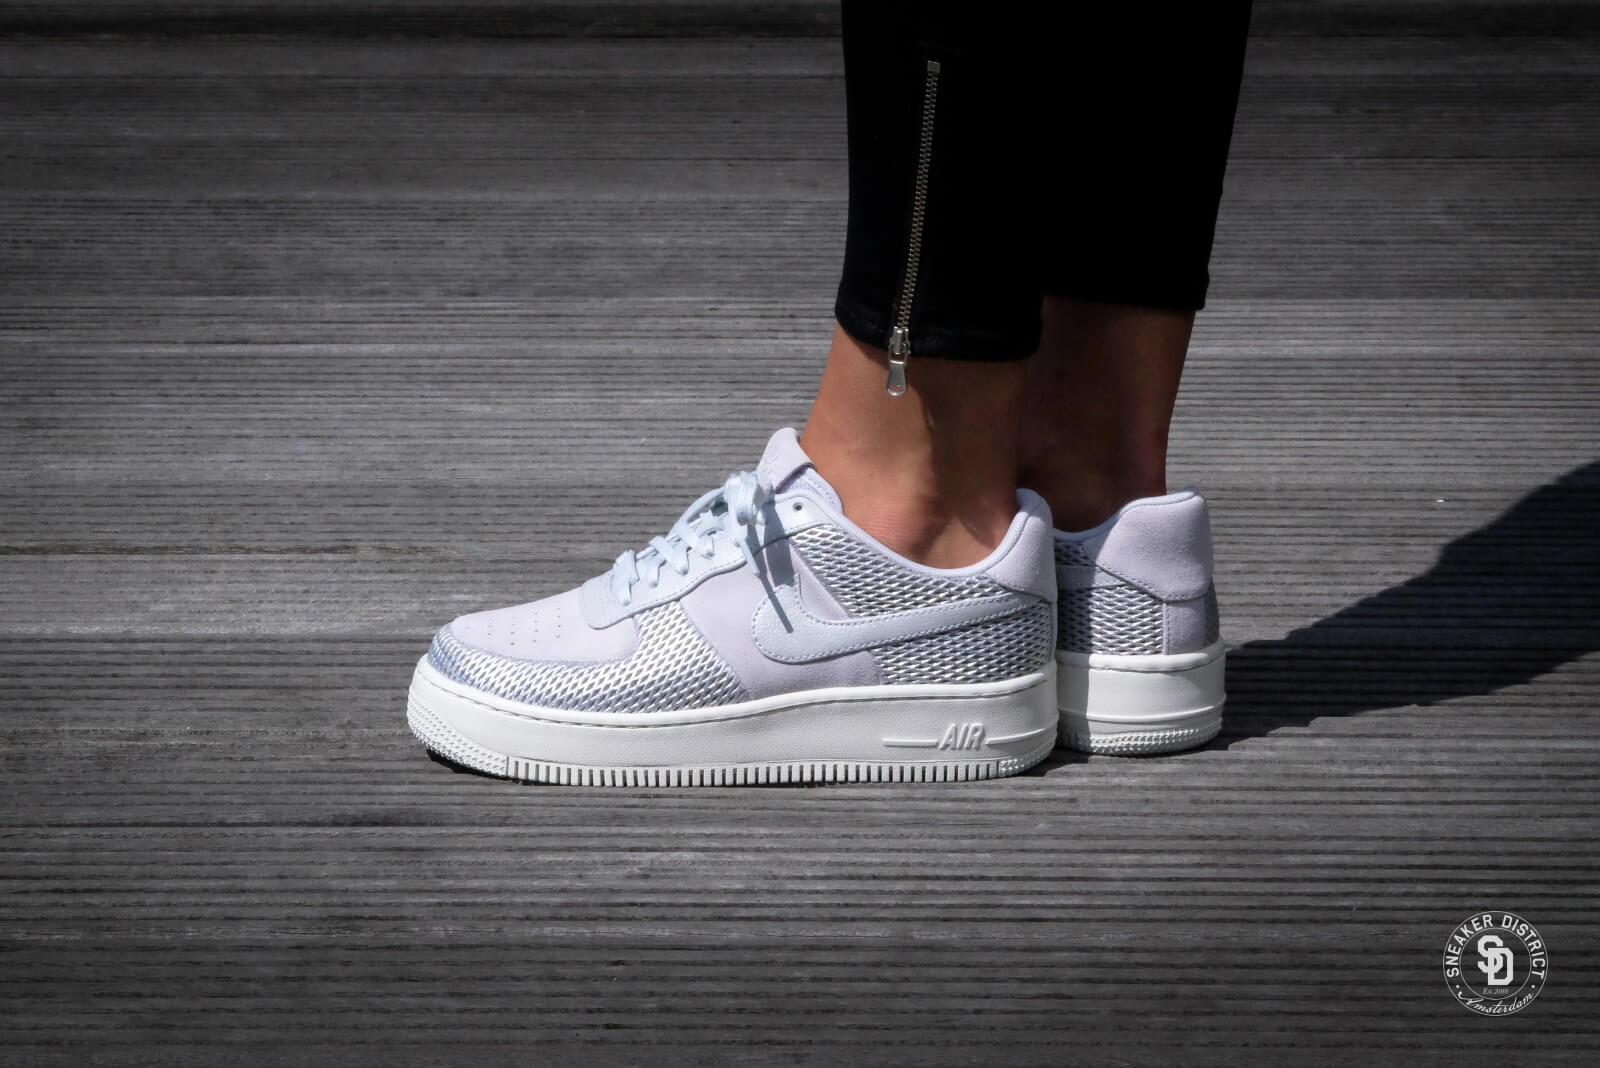 2air force 1 upstep